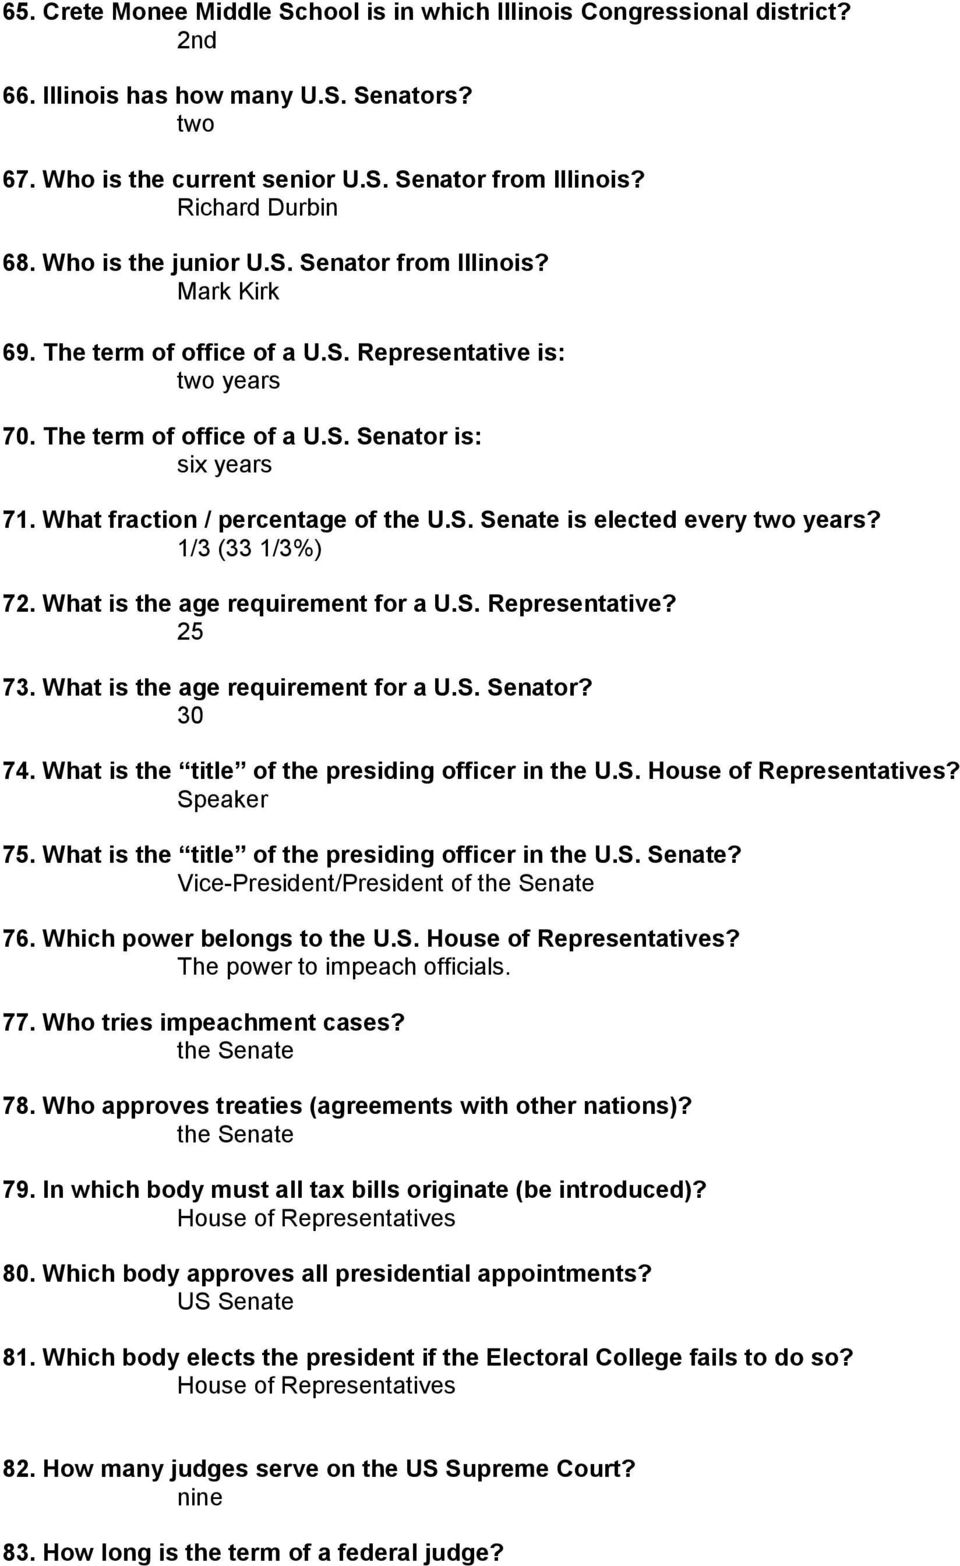 What fraction / percentage of the U.S. Senate is elected every two years? 1/3 (33 1/3%) 72. What is the age requirement for a U.S. Representative? 25 73. What is the age requirement for a U.S. Senator?